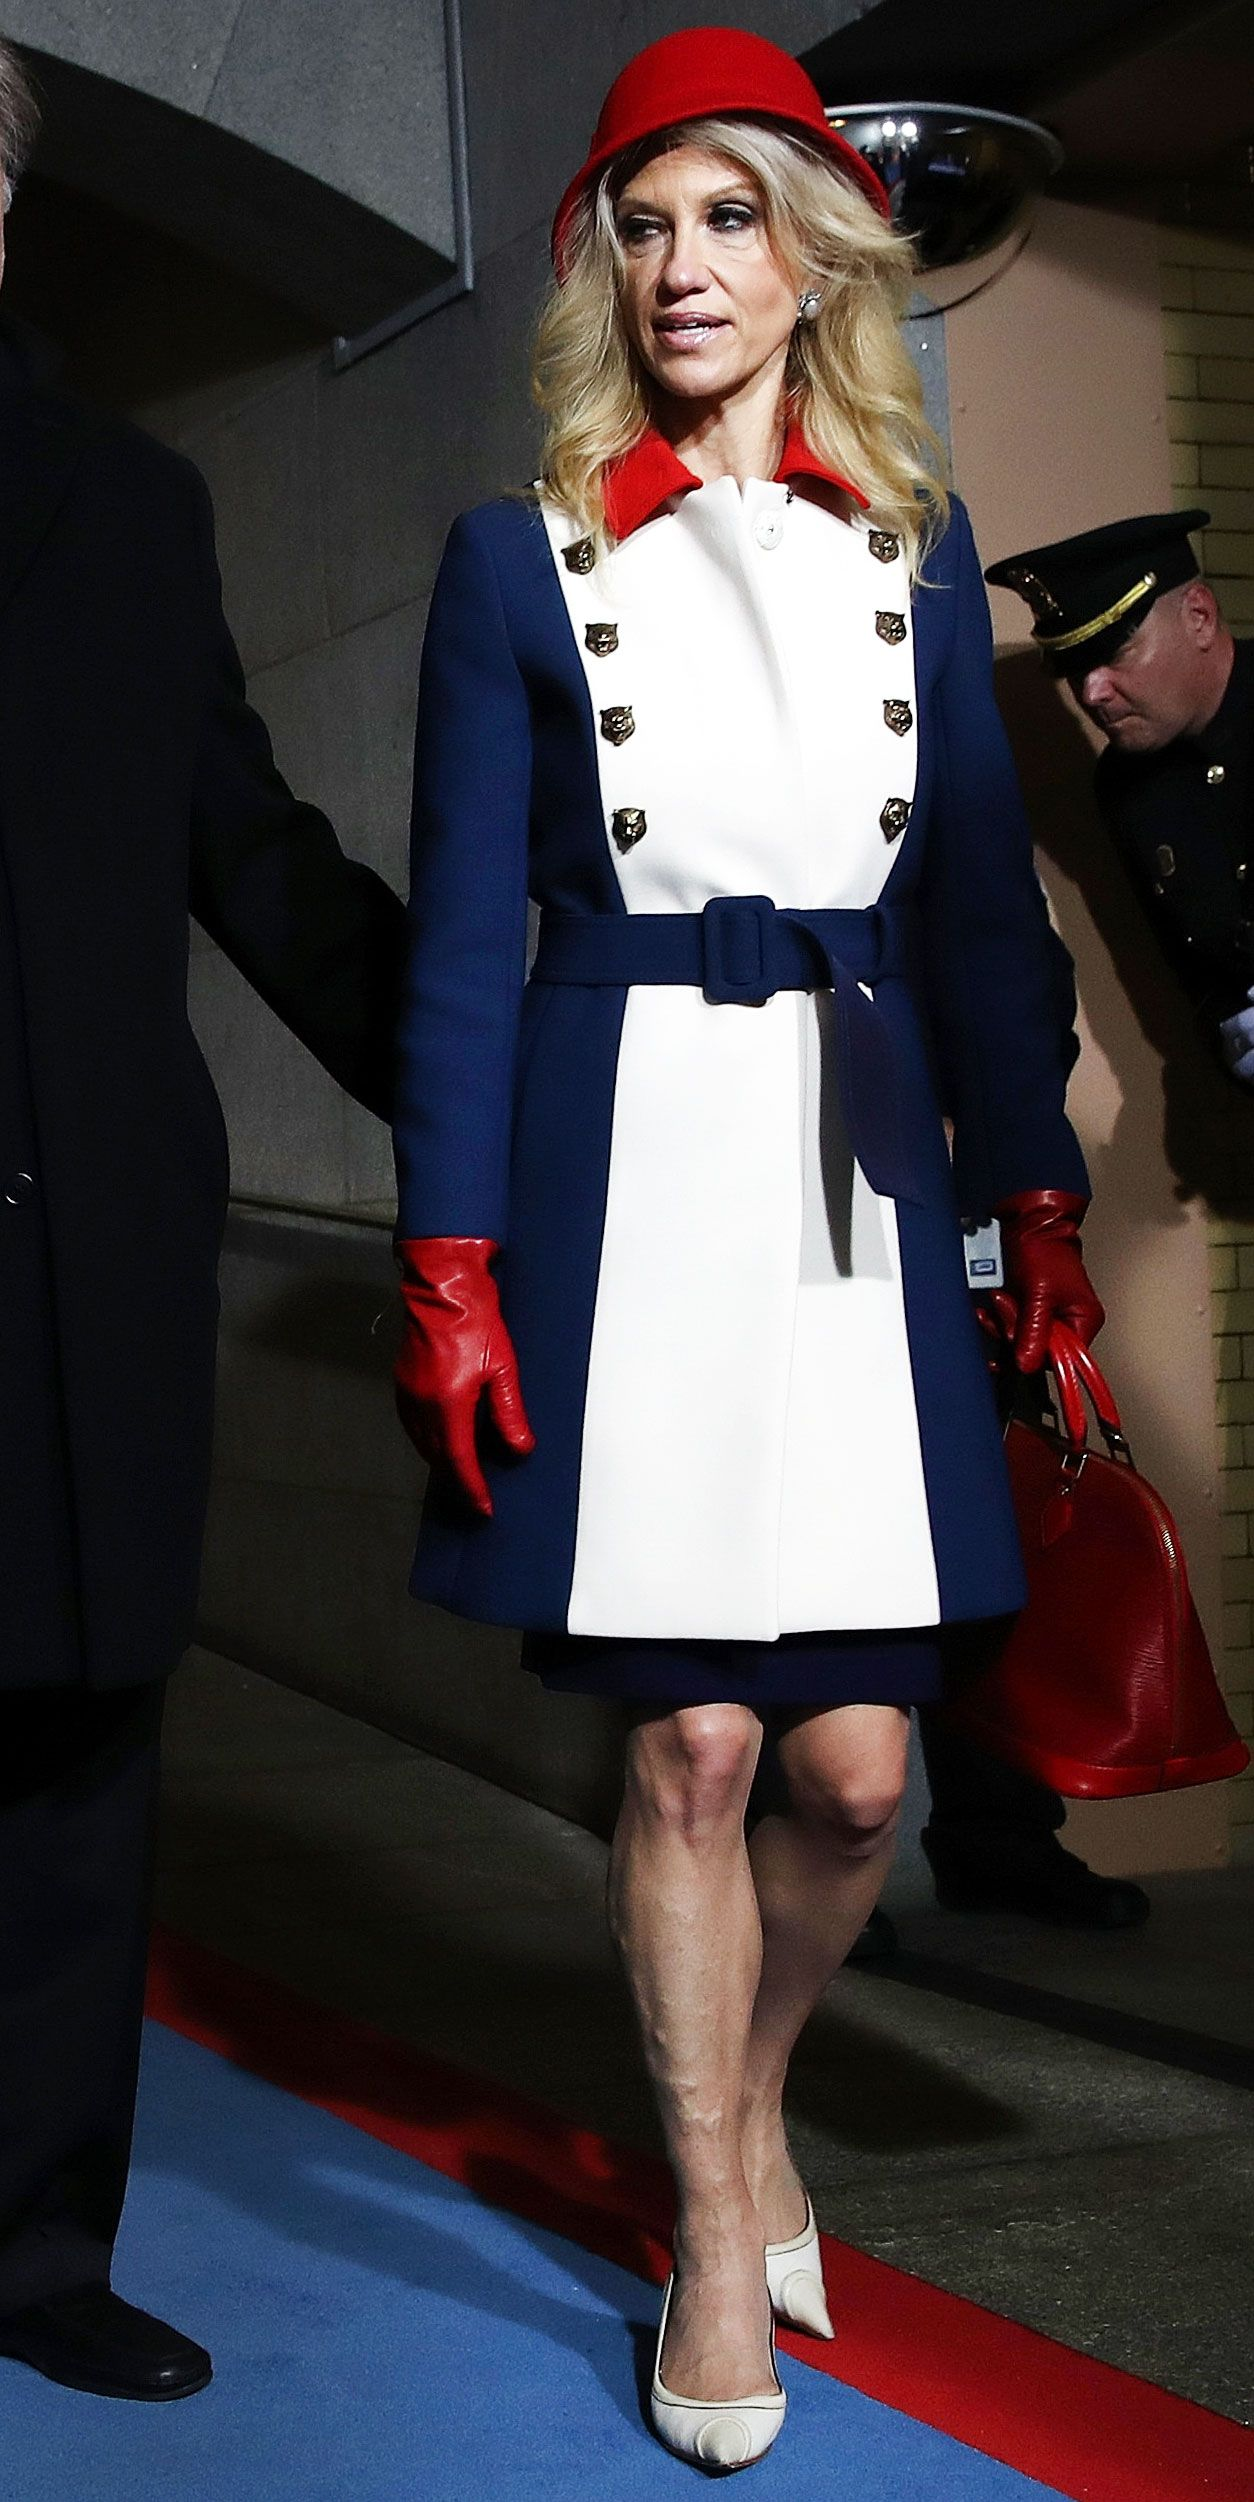 Kellyanne Conway's Inauguration Outfit Sets Twitter Abuzz ...